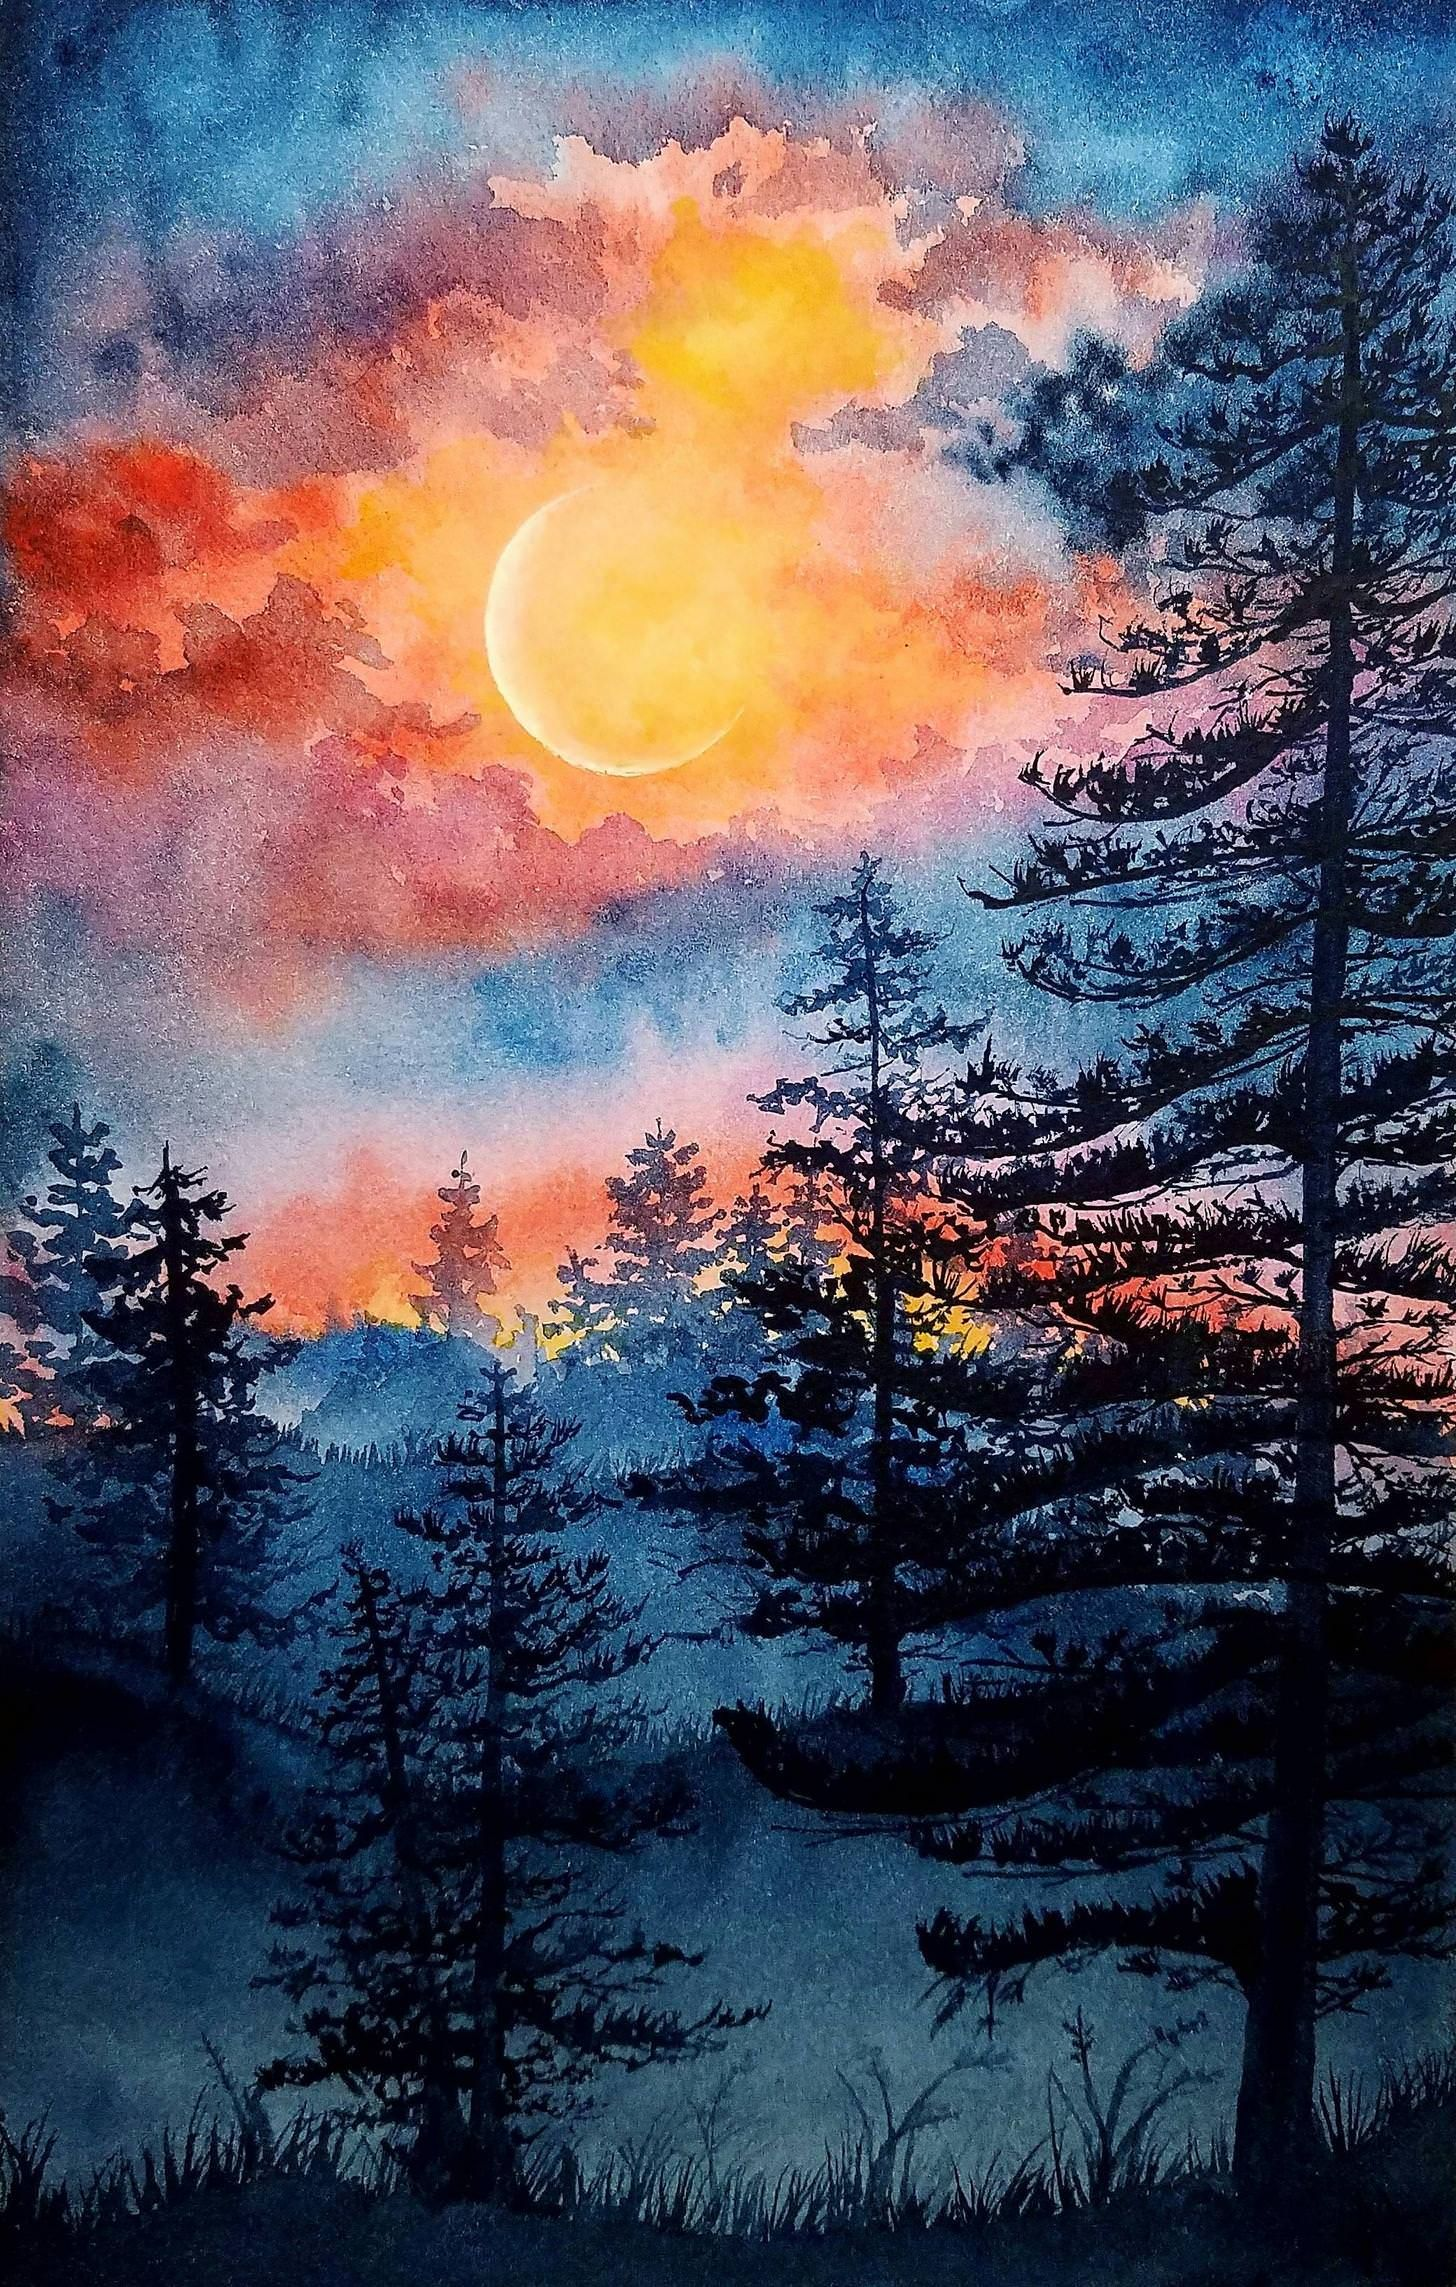 Moonlight Watercolor 6x8 Landscape Art Painting Moonlight